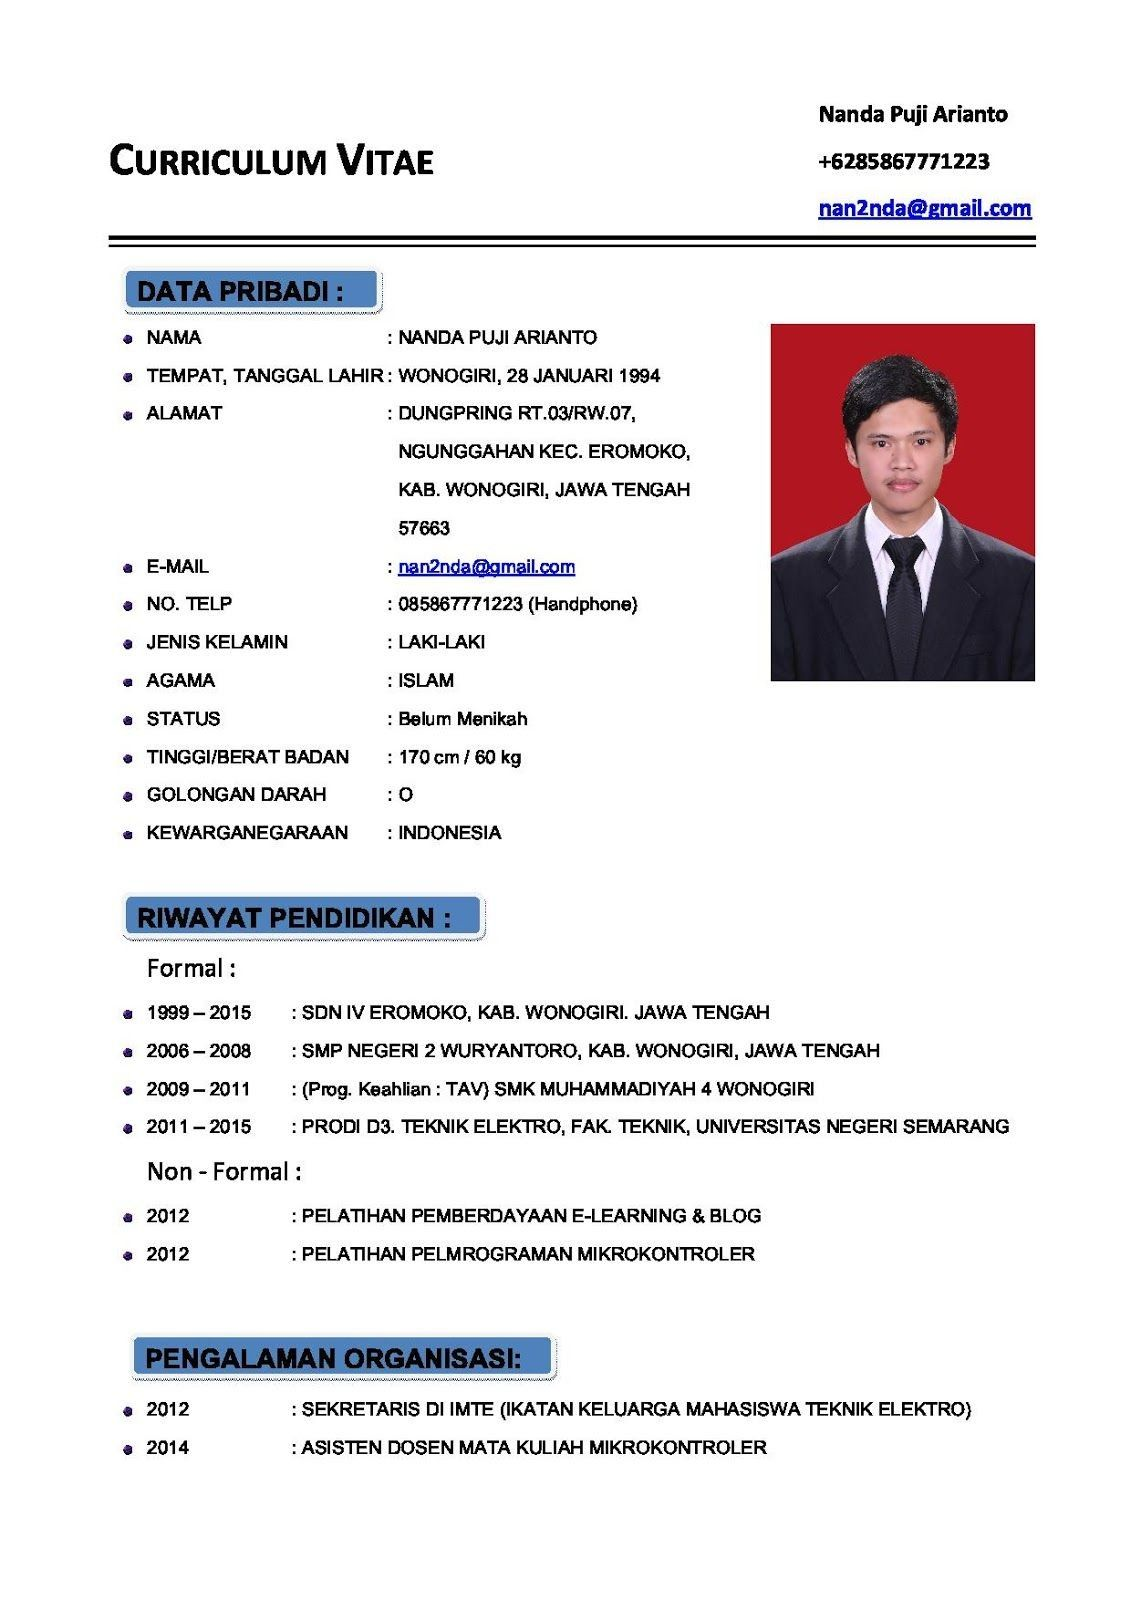 Contoh Cv Curriculum Vitae The Truth About Contoh Cv Curriculum Vitae Is Abou Curriculum Vitae Template Curriculum Vitae Resume Curriculum Vitae Template Free